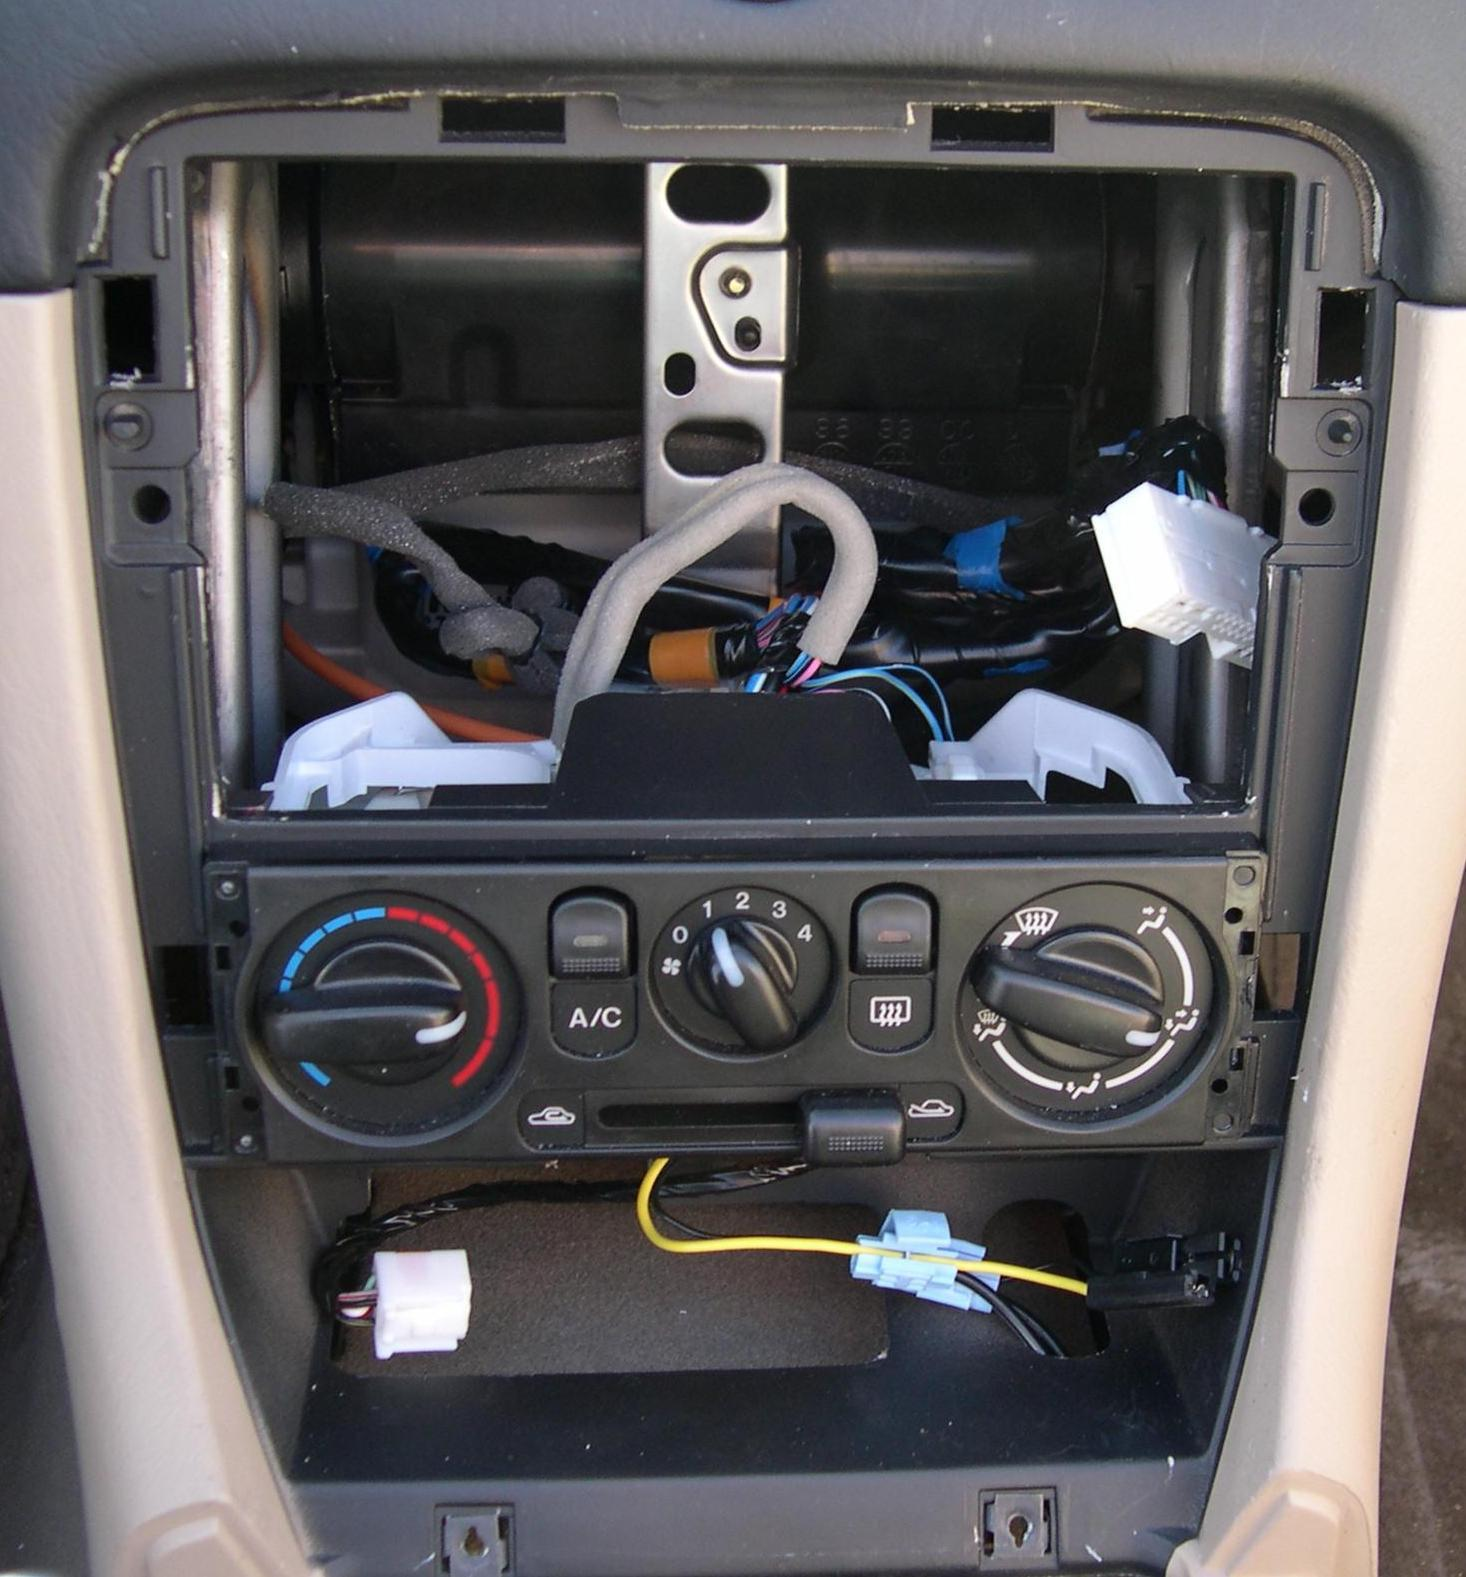 The Mazda Nb Oem Audio System Faq Rx7 Series 8 Wiring Diagram 2001 Radio Out Photo Stephen Foskett